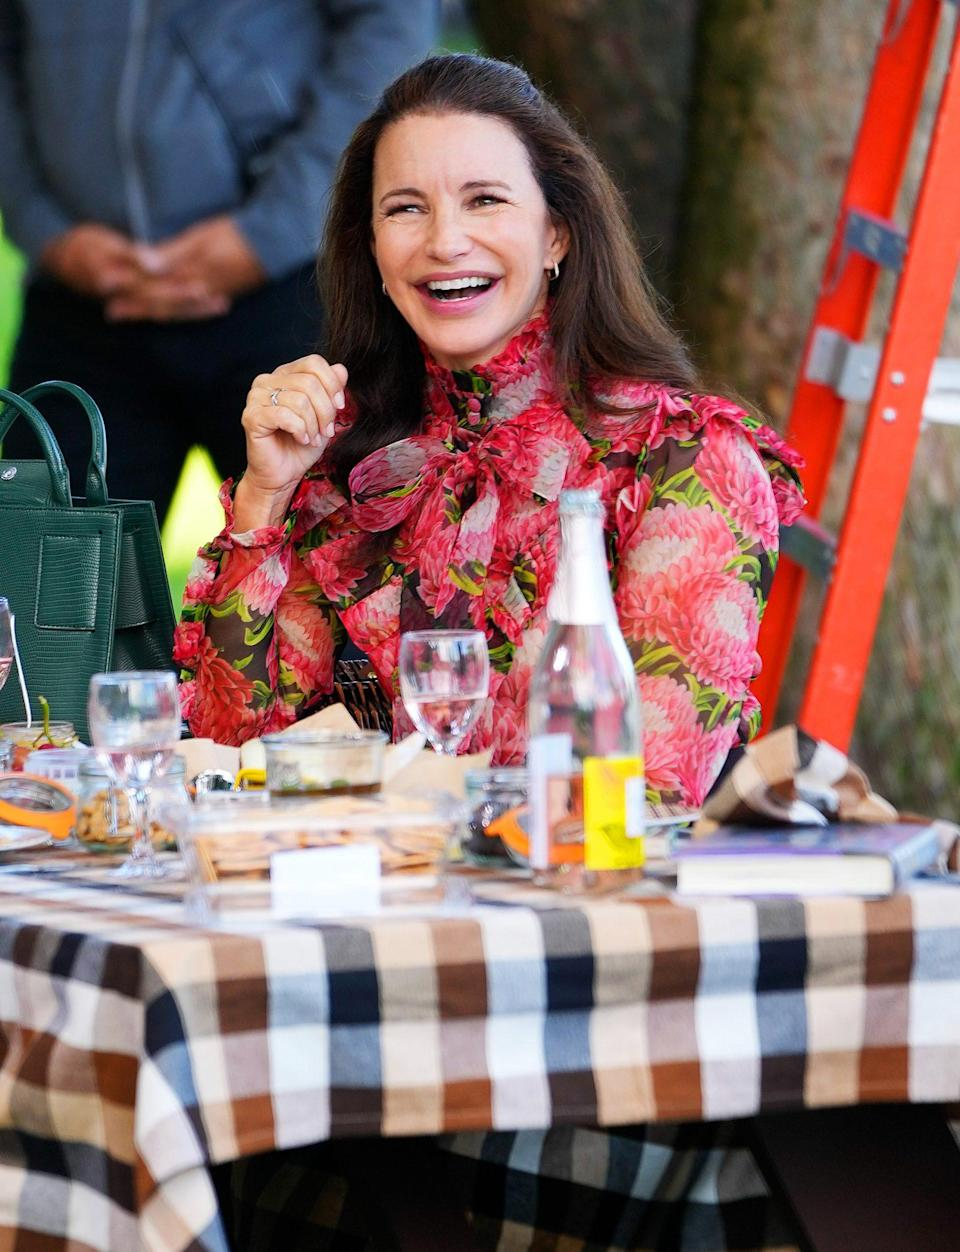 <p>Kristin Davis has something to smile about on Sept. 20 while filming <em>And Just Like That ...</em> in New York City.</p>